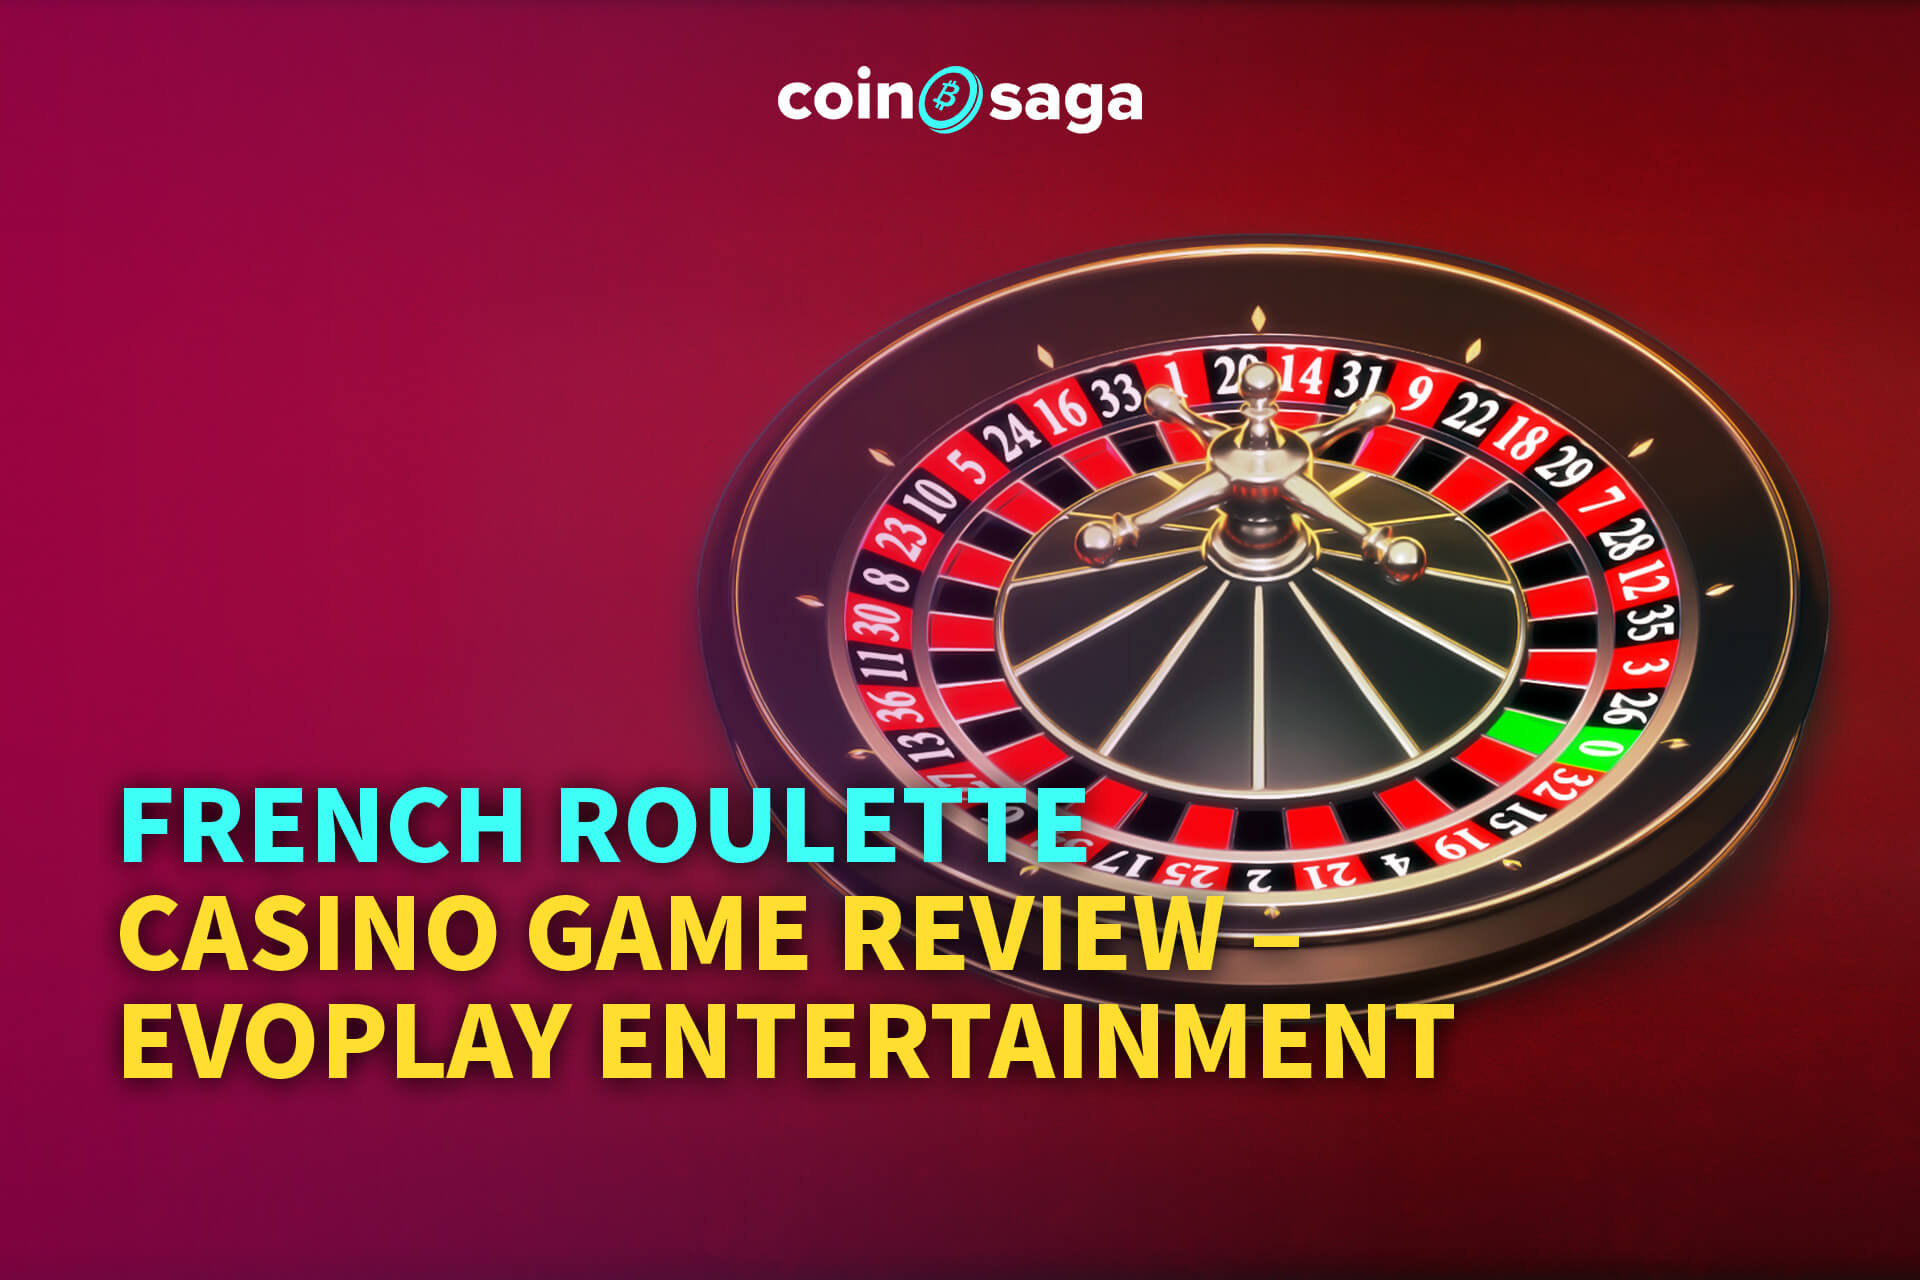 French Roulette Casino Game